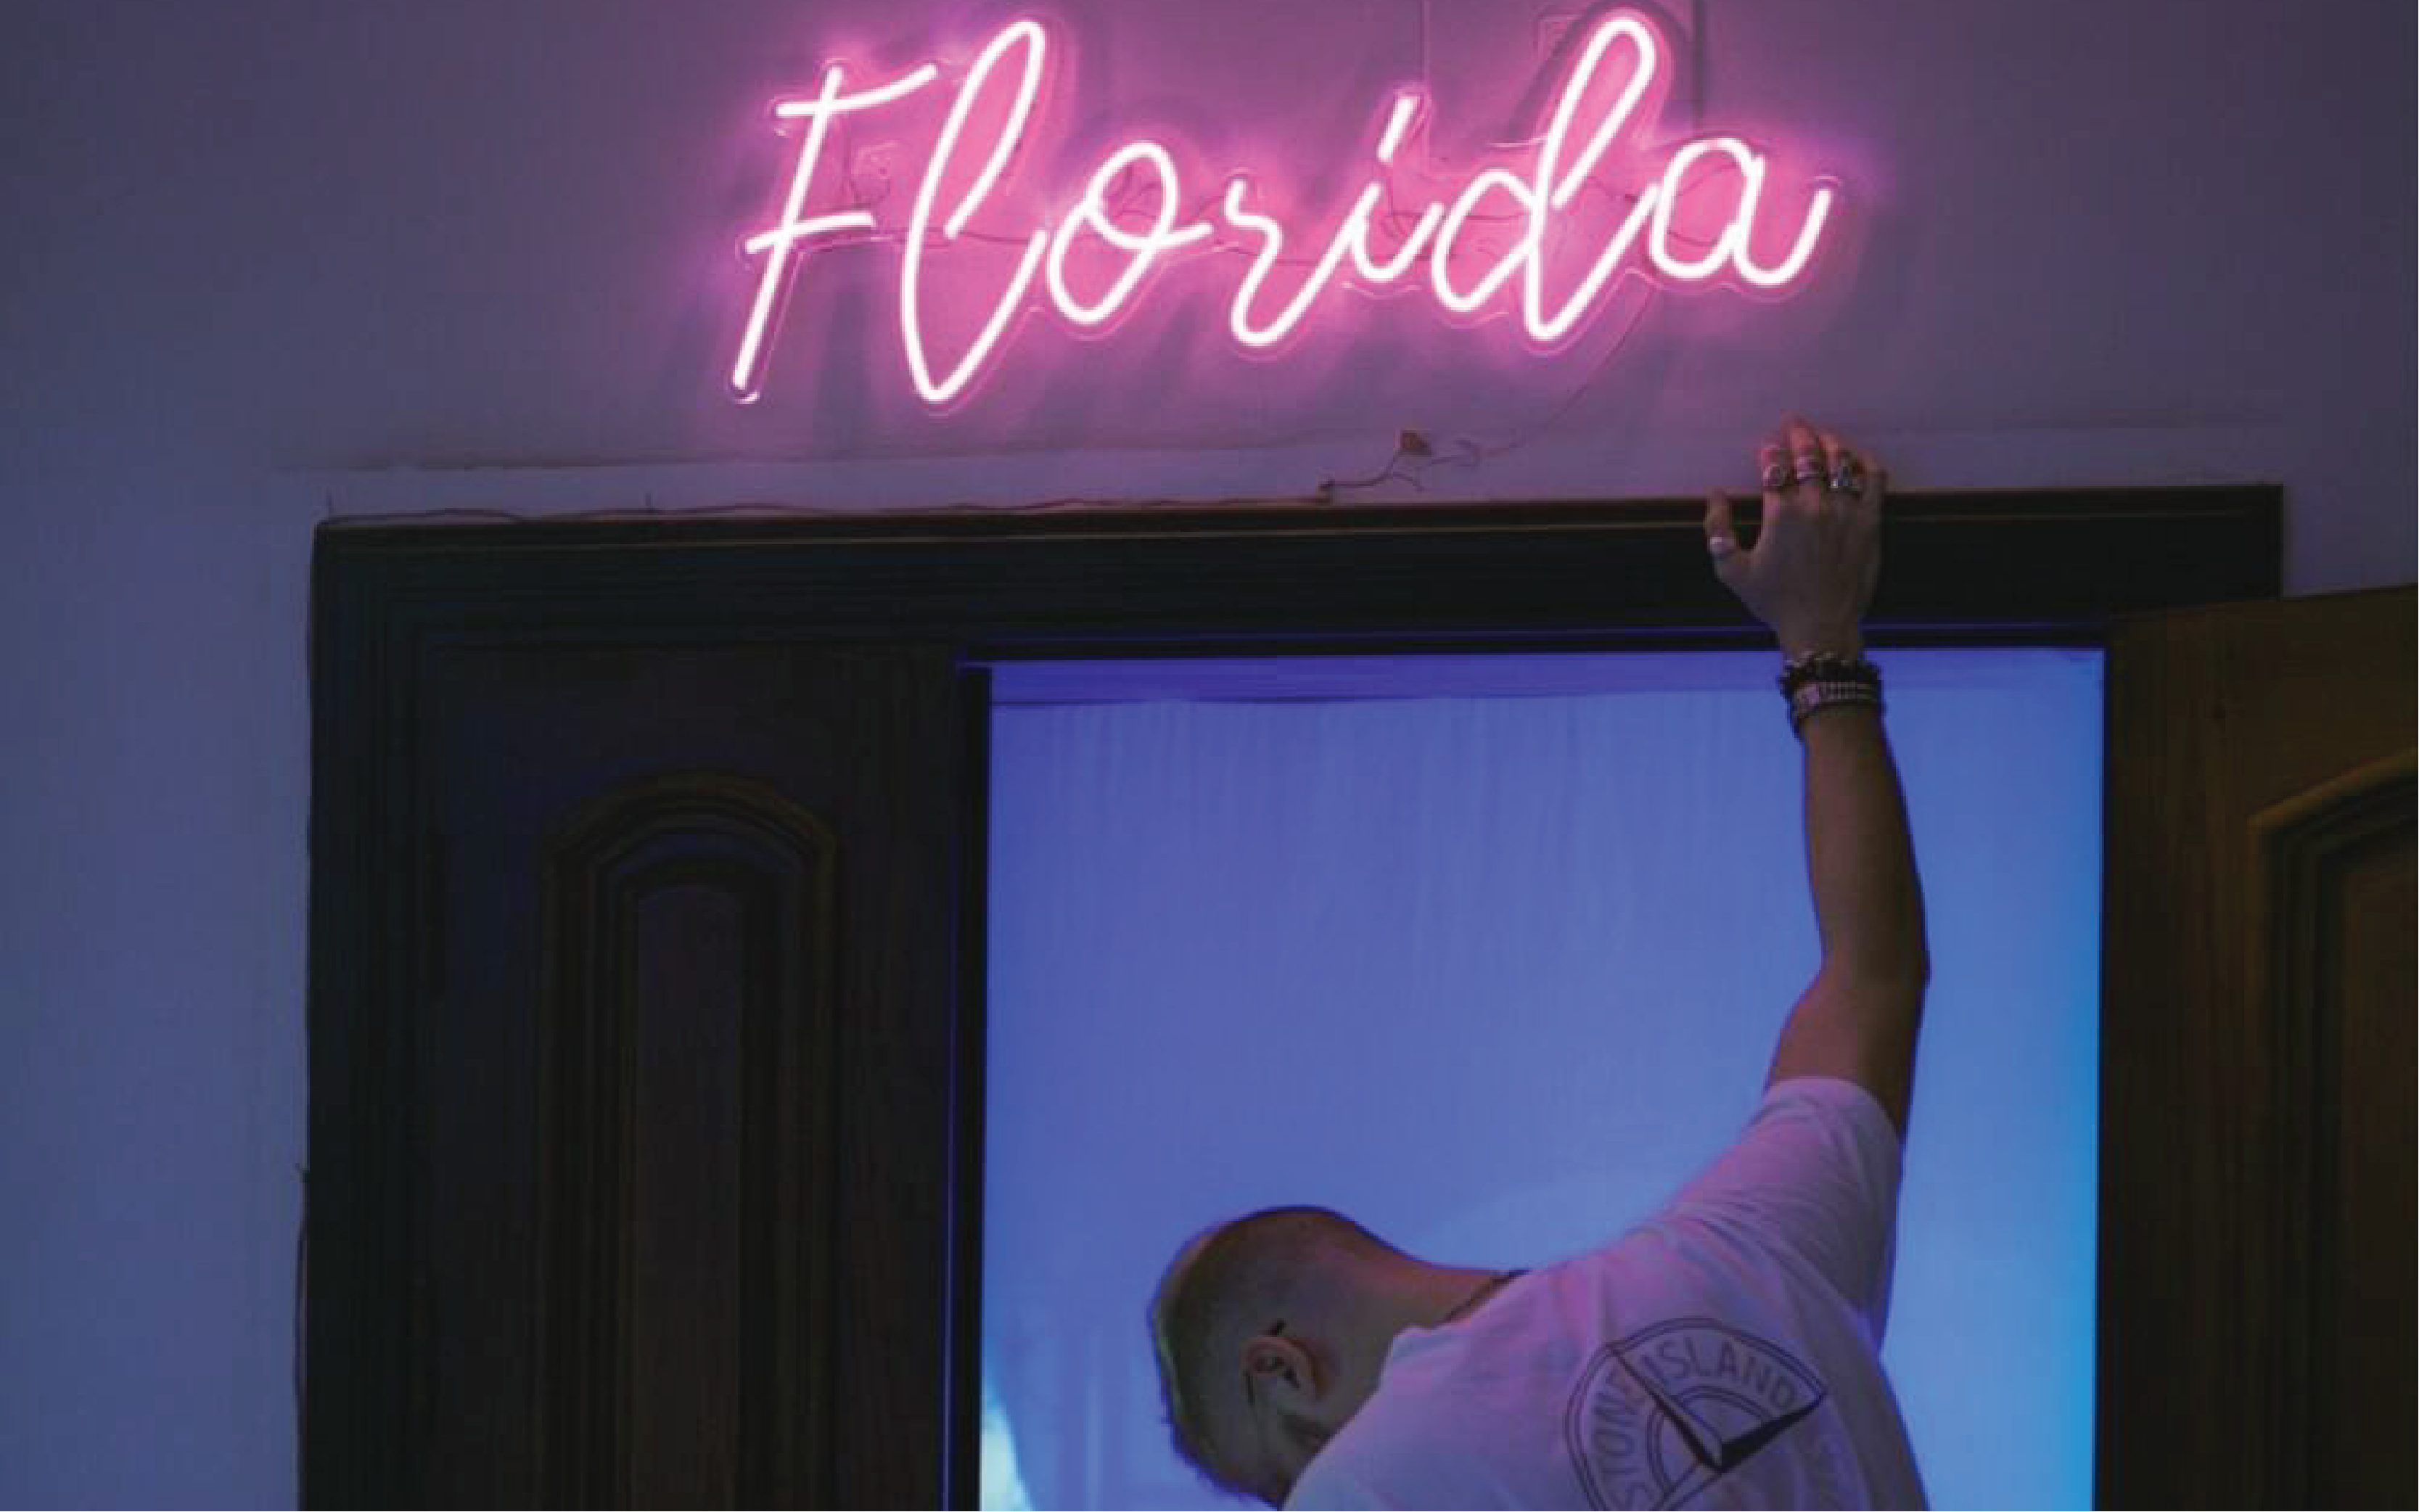 Egyptian Rapper Marwan Moussa Kicks-Off 2021 with New Album 'Florida'